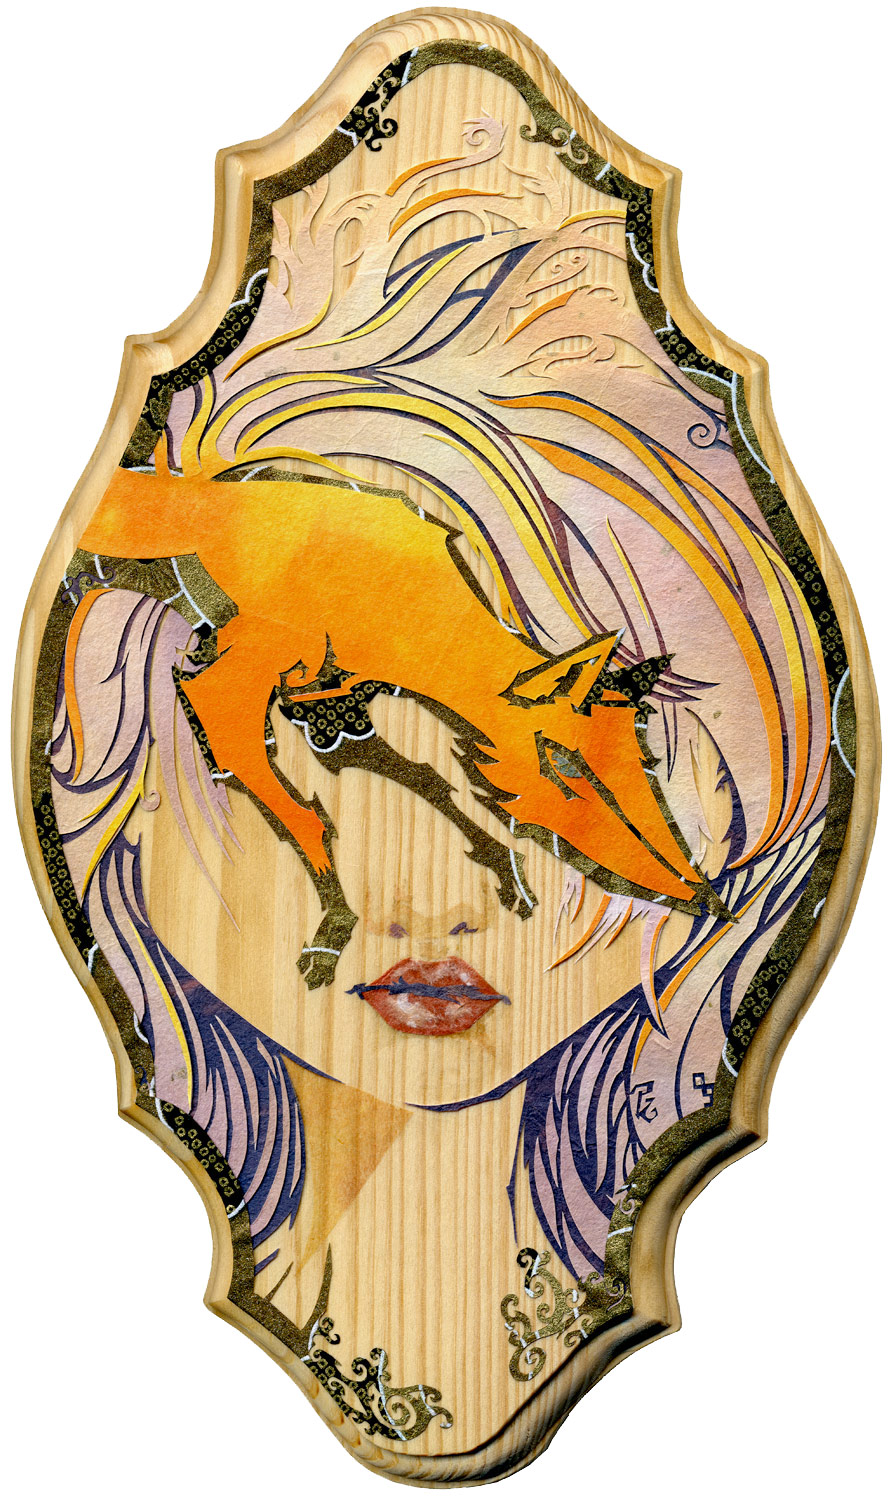 Vixen (Inari) size: 17.2 x 29 cm ( about 6 3/4 x 11 1/2″ ) medium: cut and torn paper on wood private collection